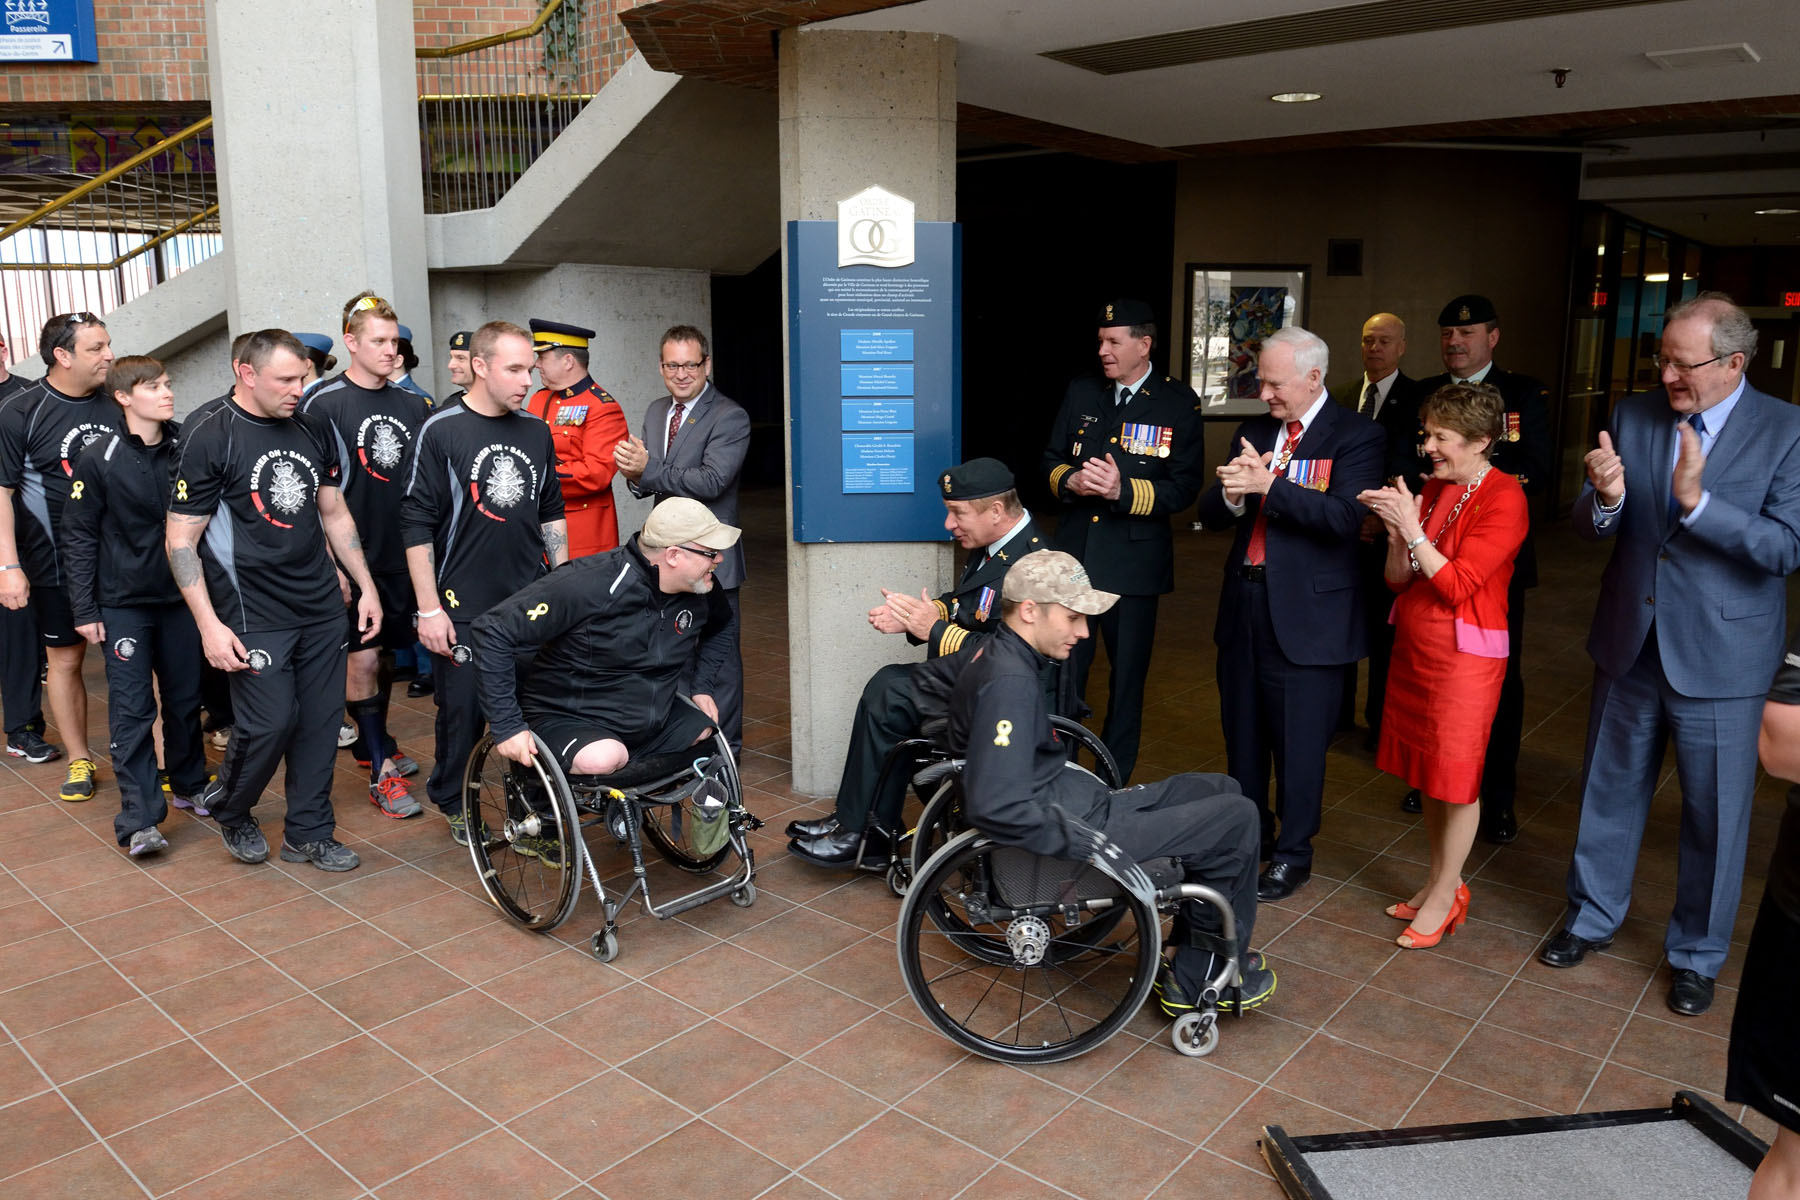 The Governor General and Mrs. Sharon Johnston joined Mr. Daniel Champagne, Gatineau City Councillor, to greet those taking part in the Soldier On Afghanistan Relay (SOAR) upon their arrival in Gatineau.